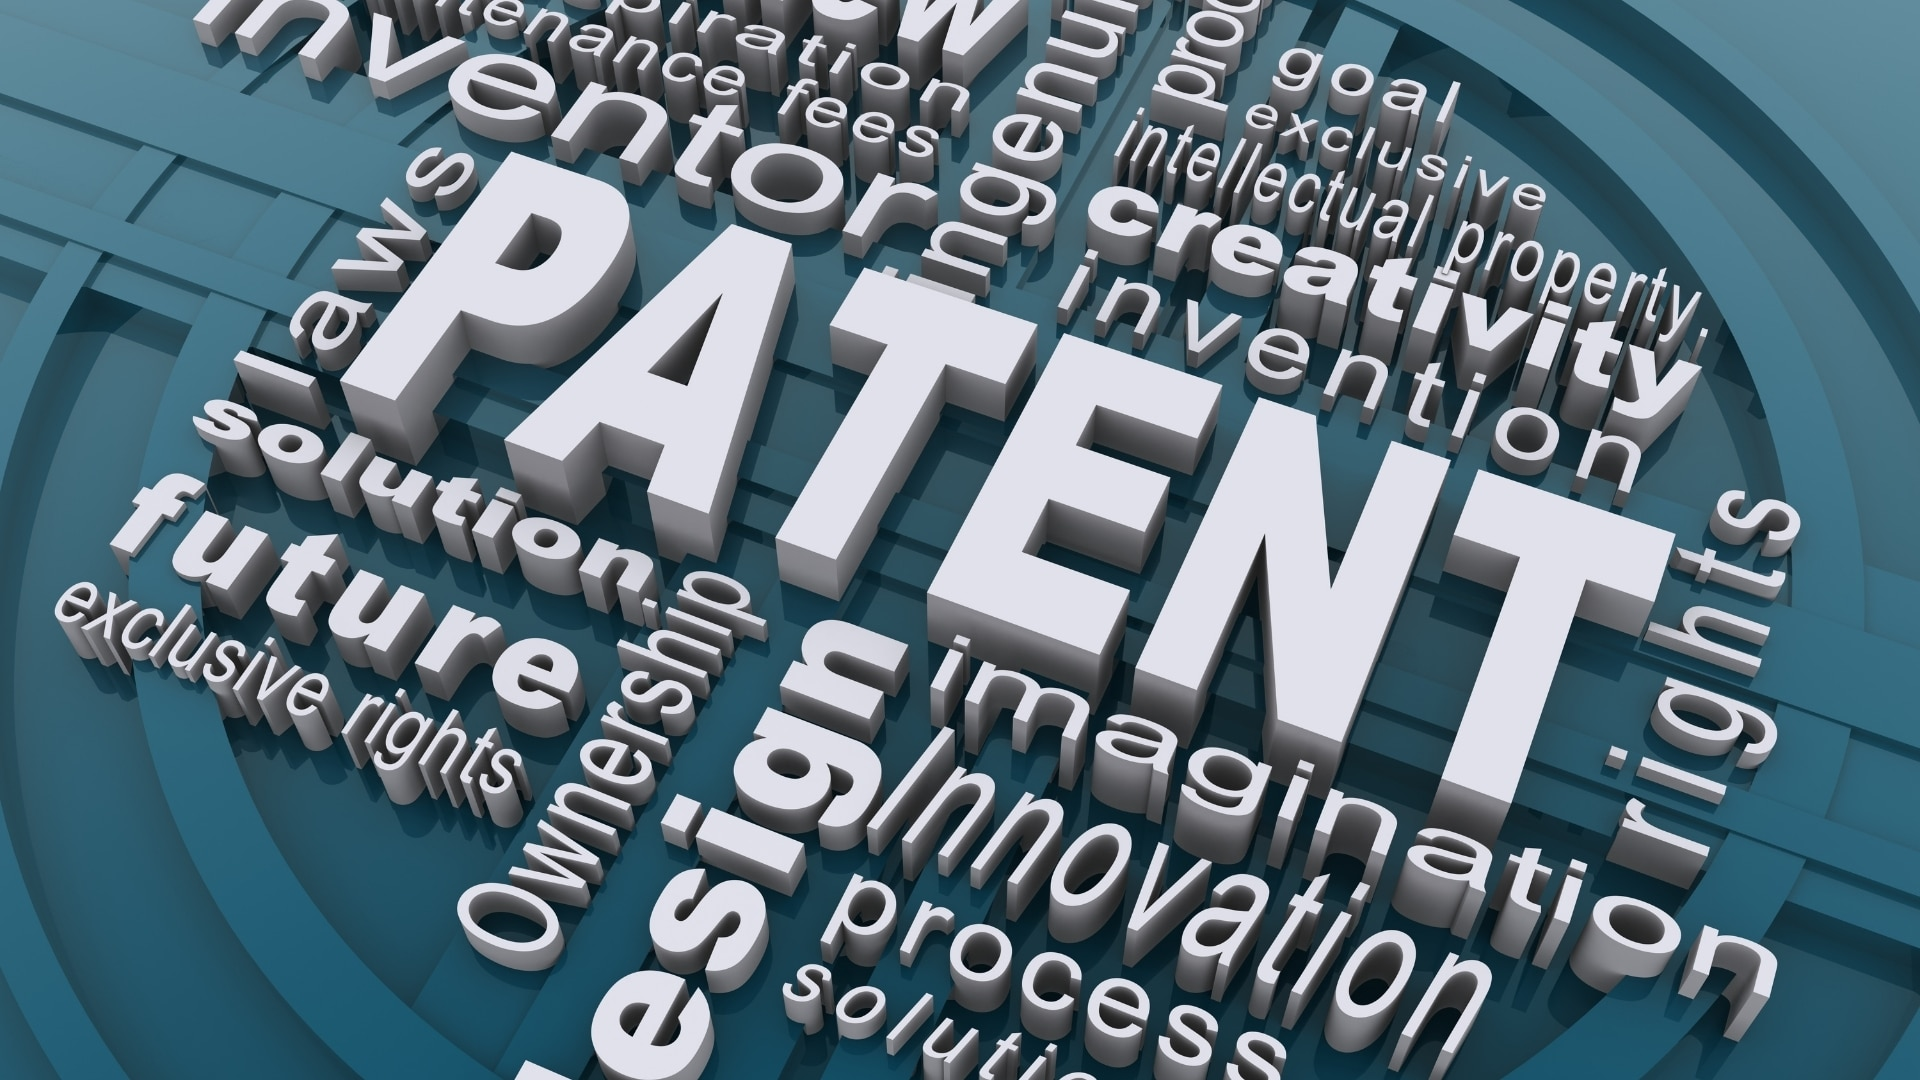 Mecwins gets new patent granted in USA